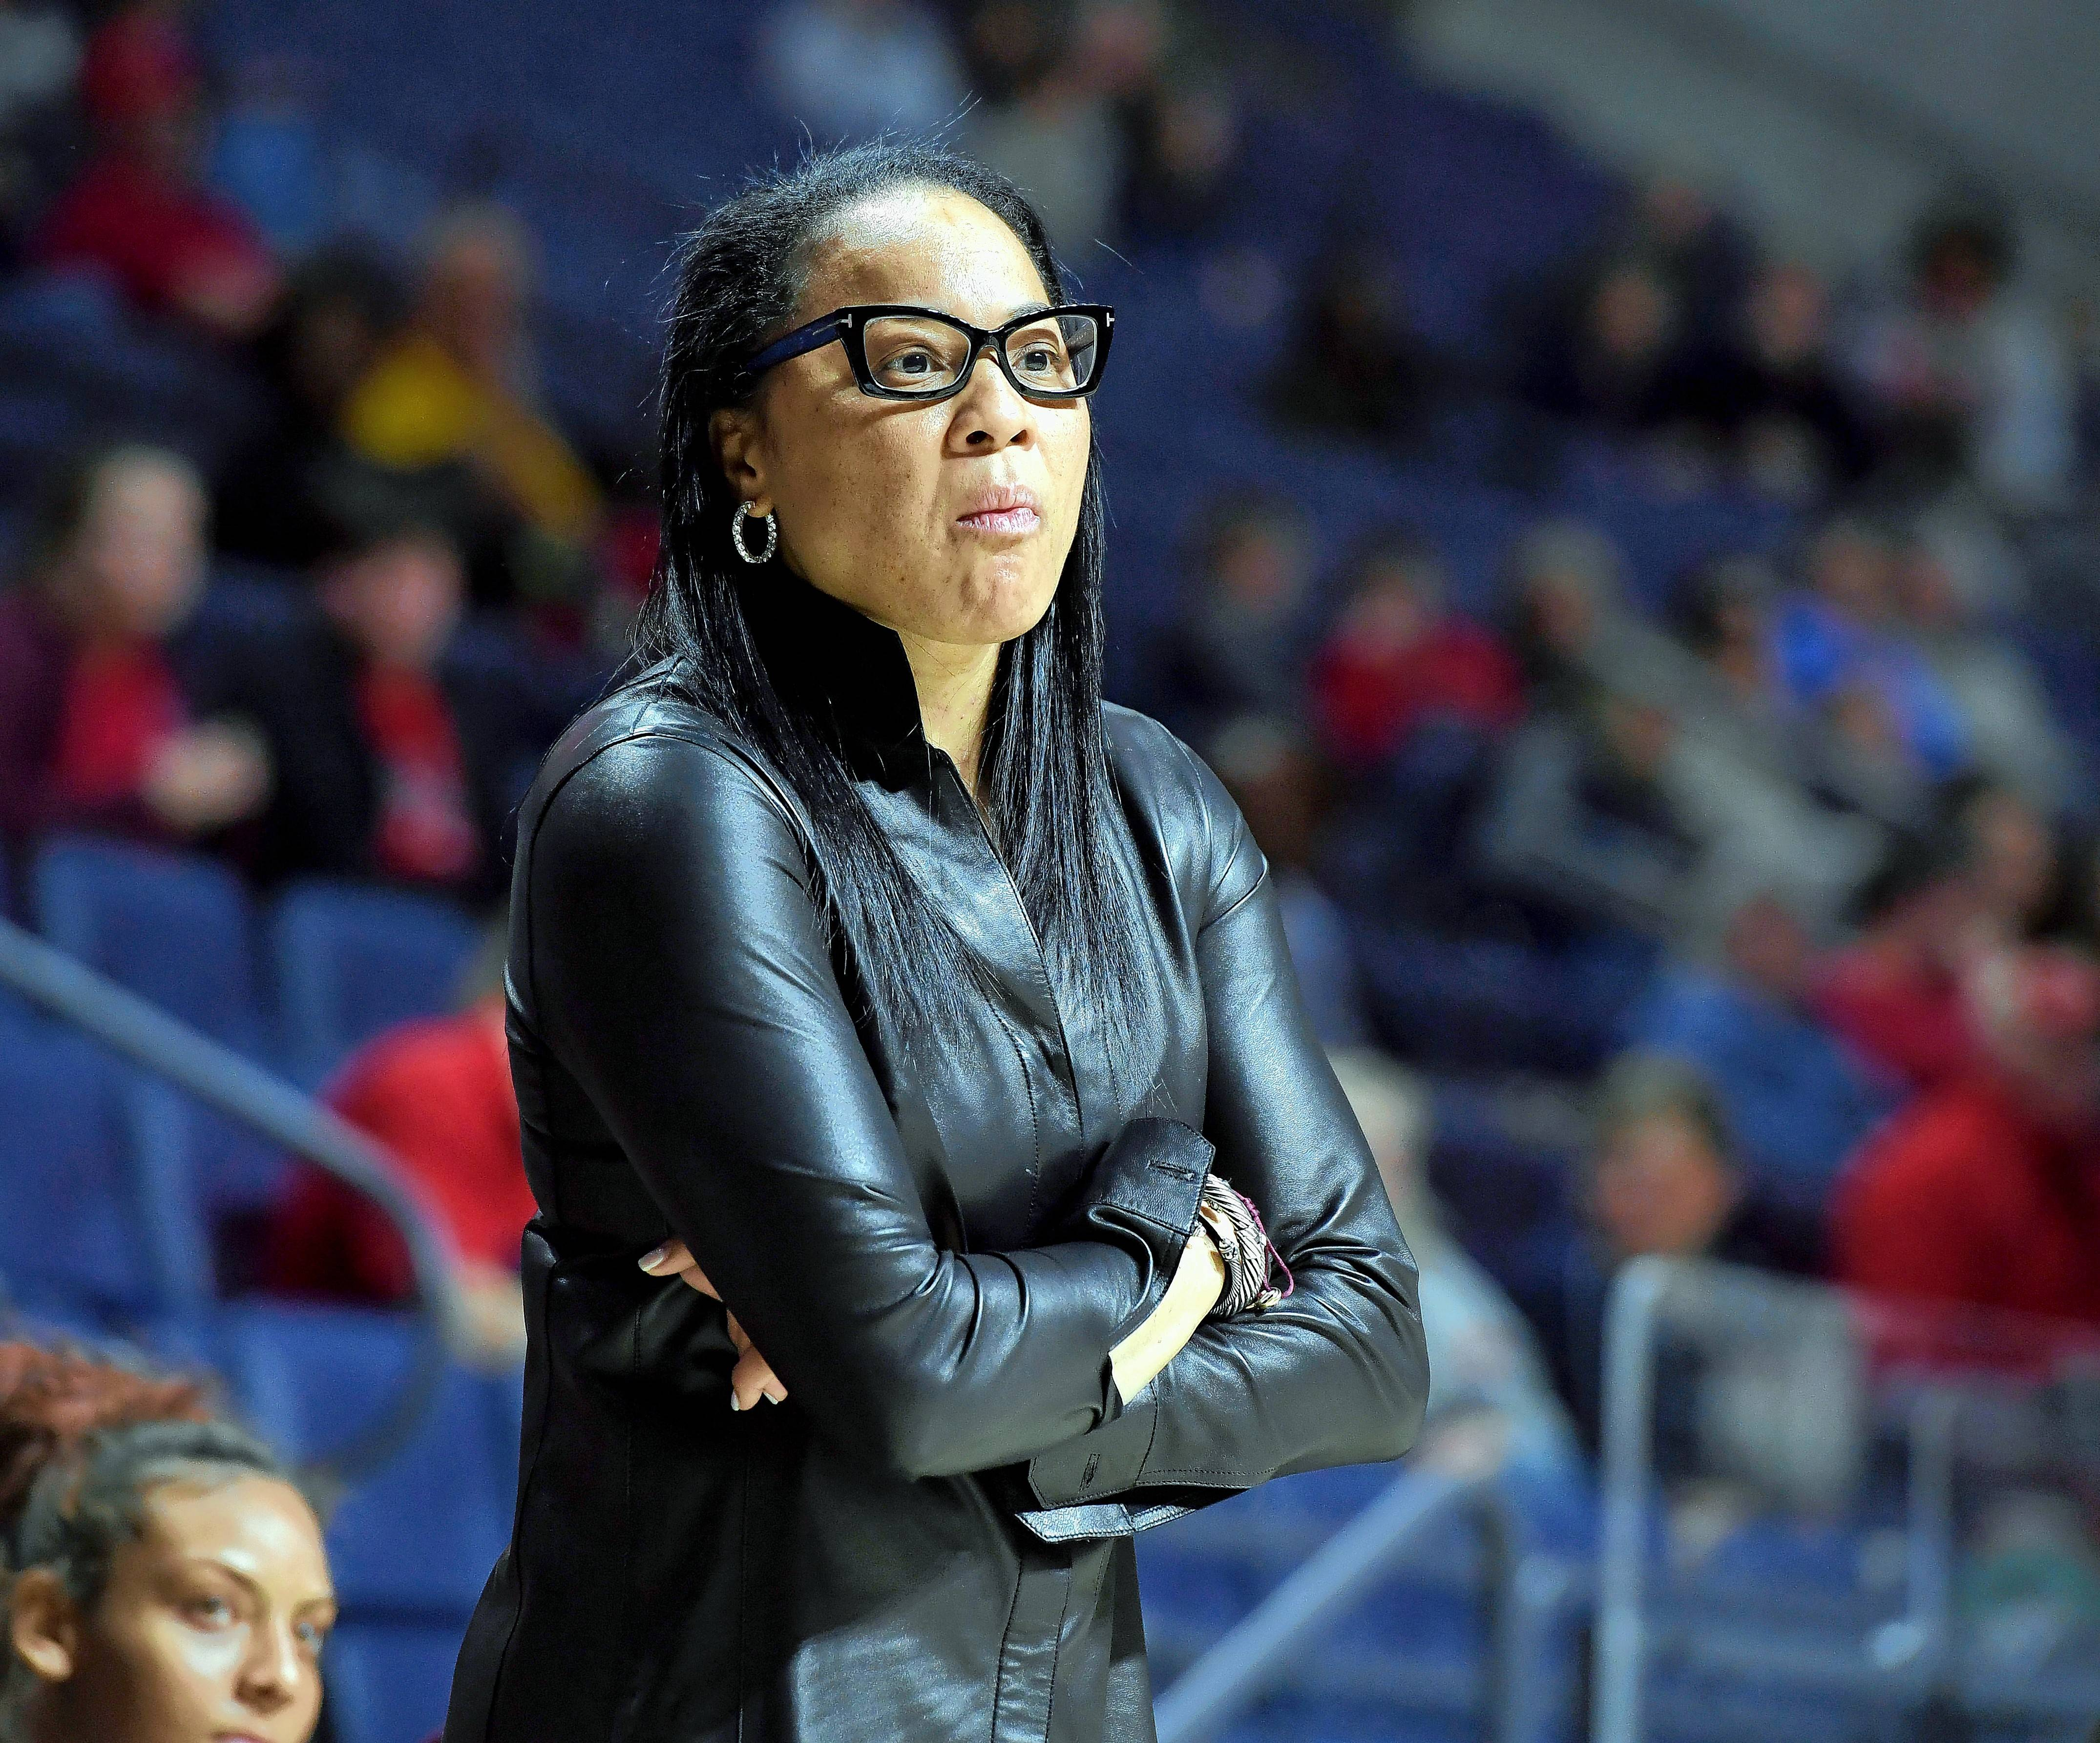 The Missouri women's basketball team says that fans of South Carolina, the defending national champion, spit on Missouri players and used racial slurs against them at Sunday's game at South Carolina. Hard to believe, considering all 10 South Carolina players and their coach, Dawn Staley above, are black. But if true, this is exactly what women's sports doesn't need.